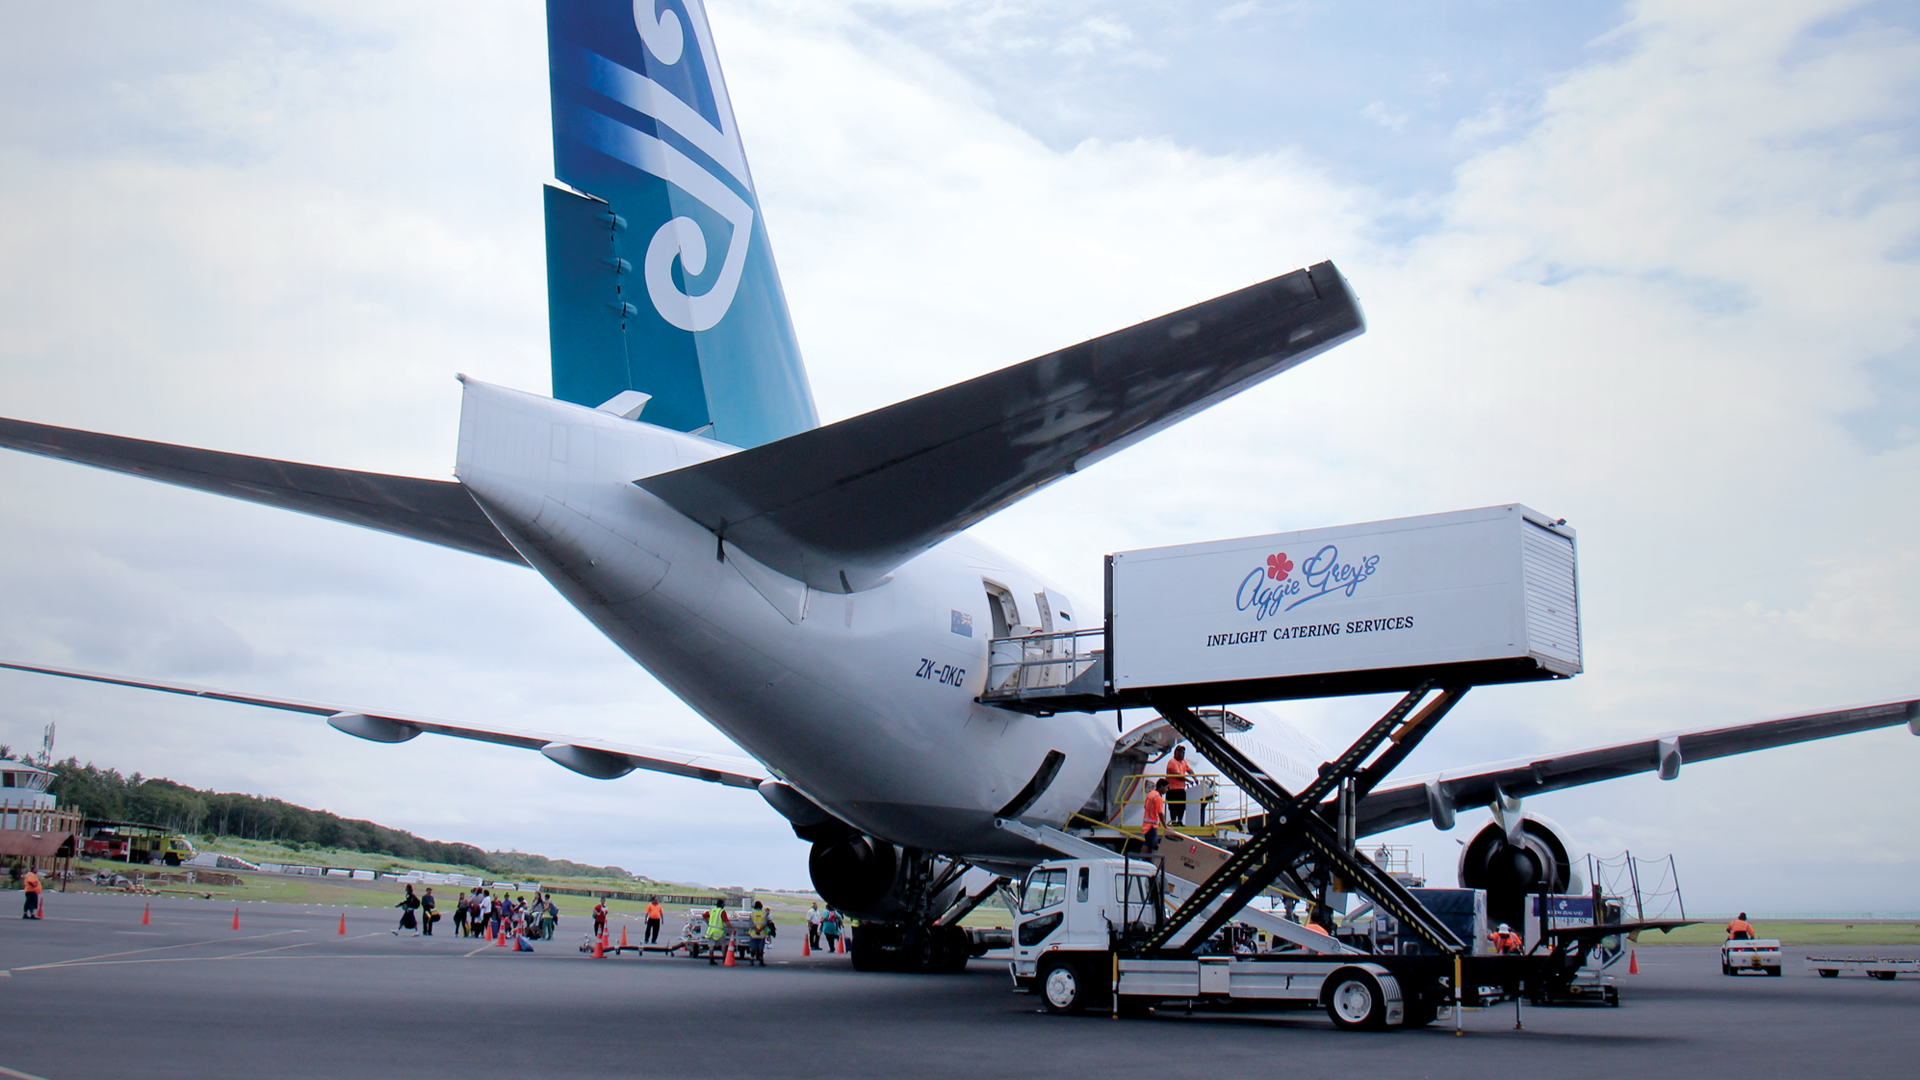 Thomson Inflight Meals >> Airline Catering Services for Air New Zealand - Faleolo Intl Airport, Samoa. | Grey Investment ...